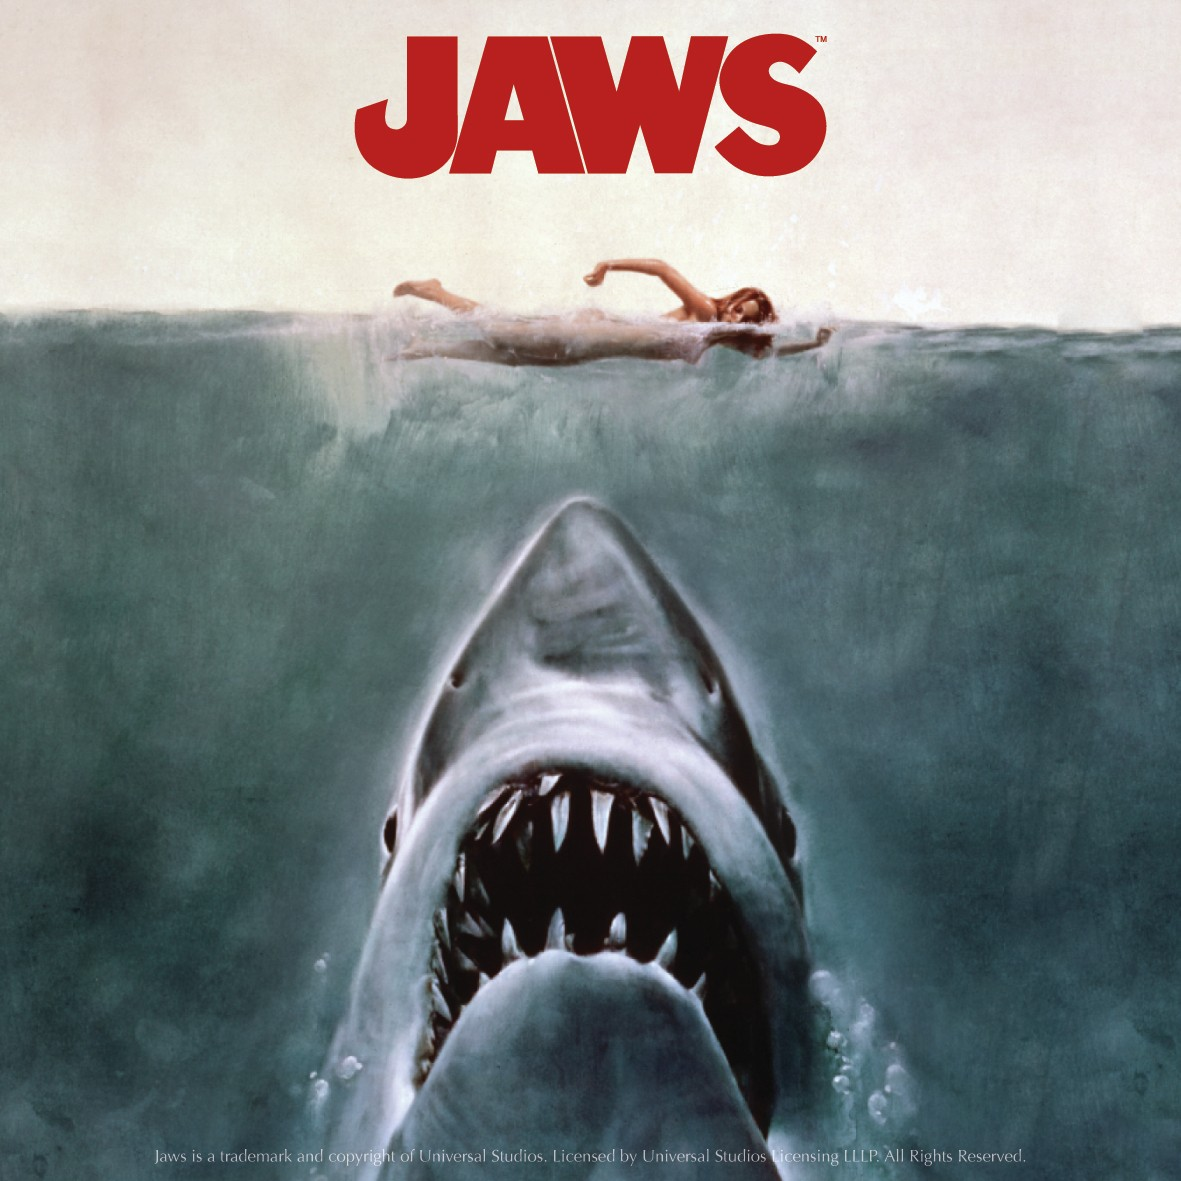 Hello Movie fans! Due to a scheduling conflict, this weeks screening of JAWS will be POSTPONED to next Thursday, August 23!